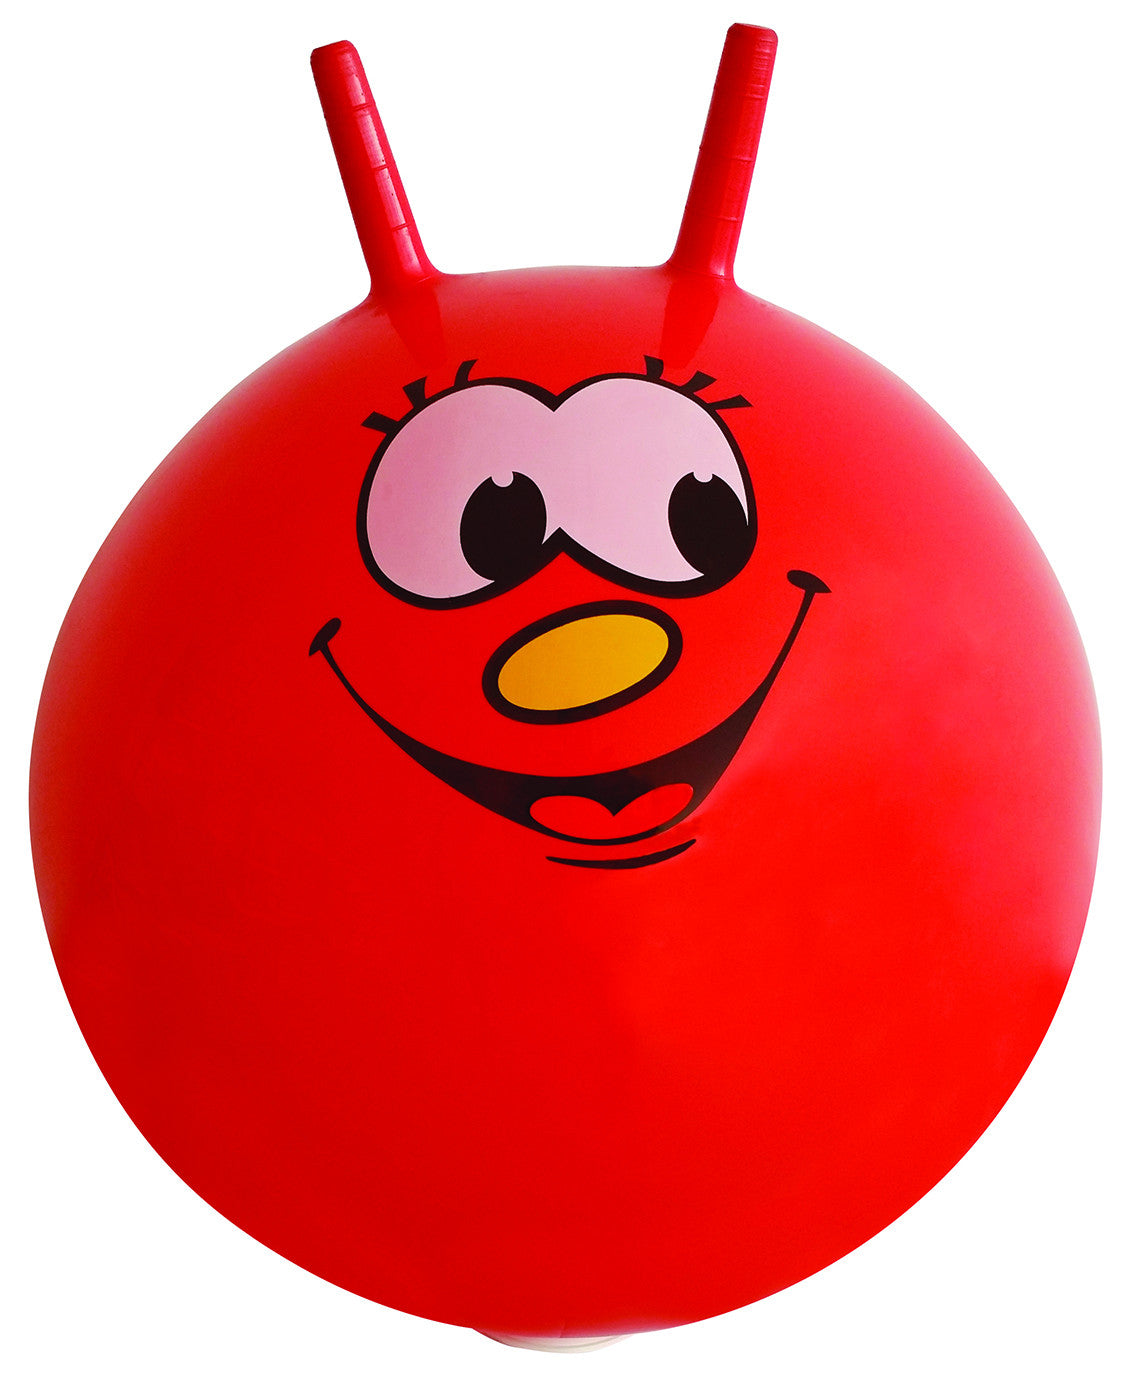 60cm Children's Space Hopper